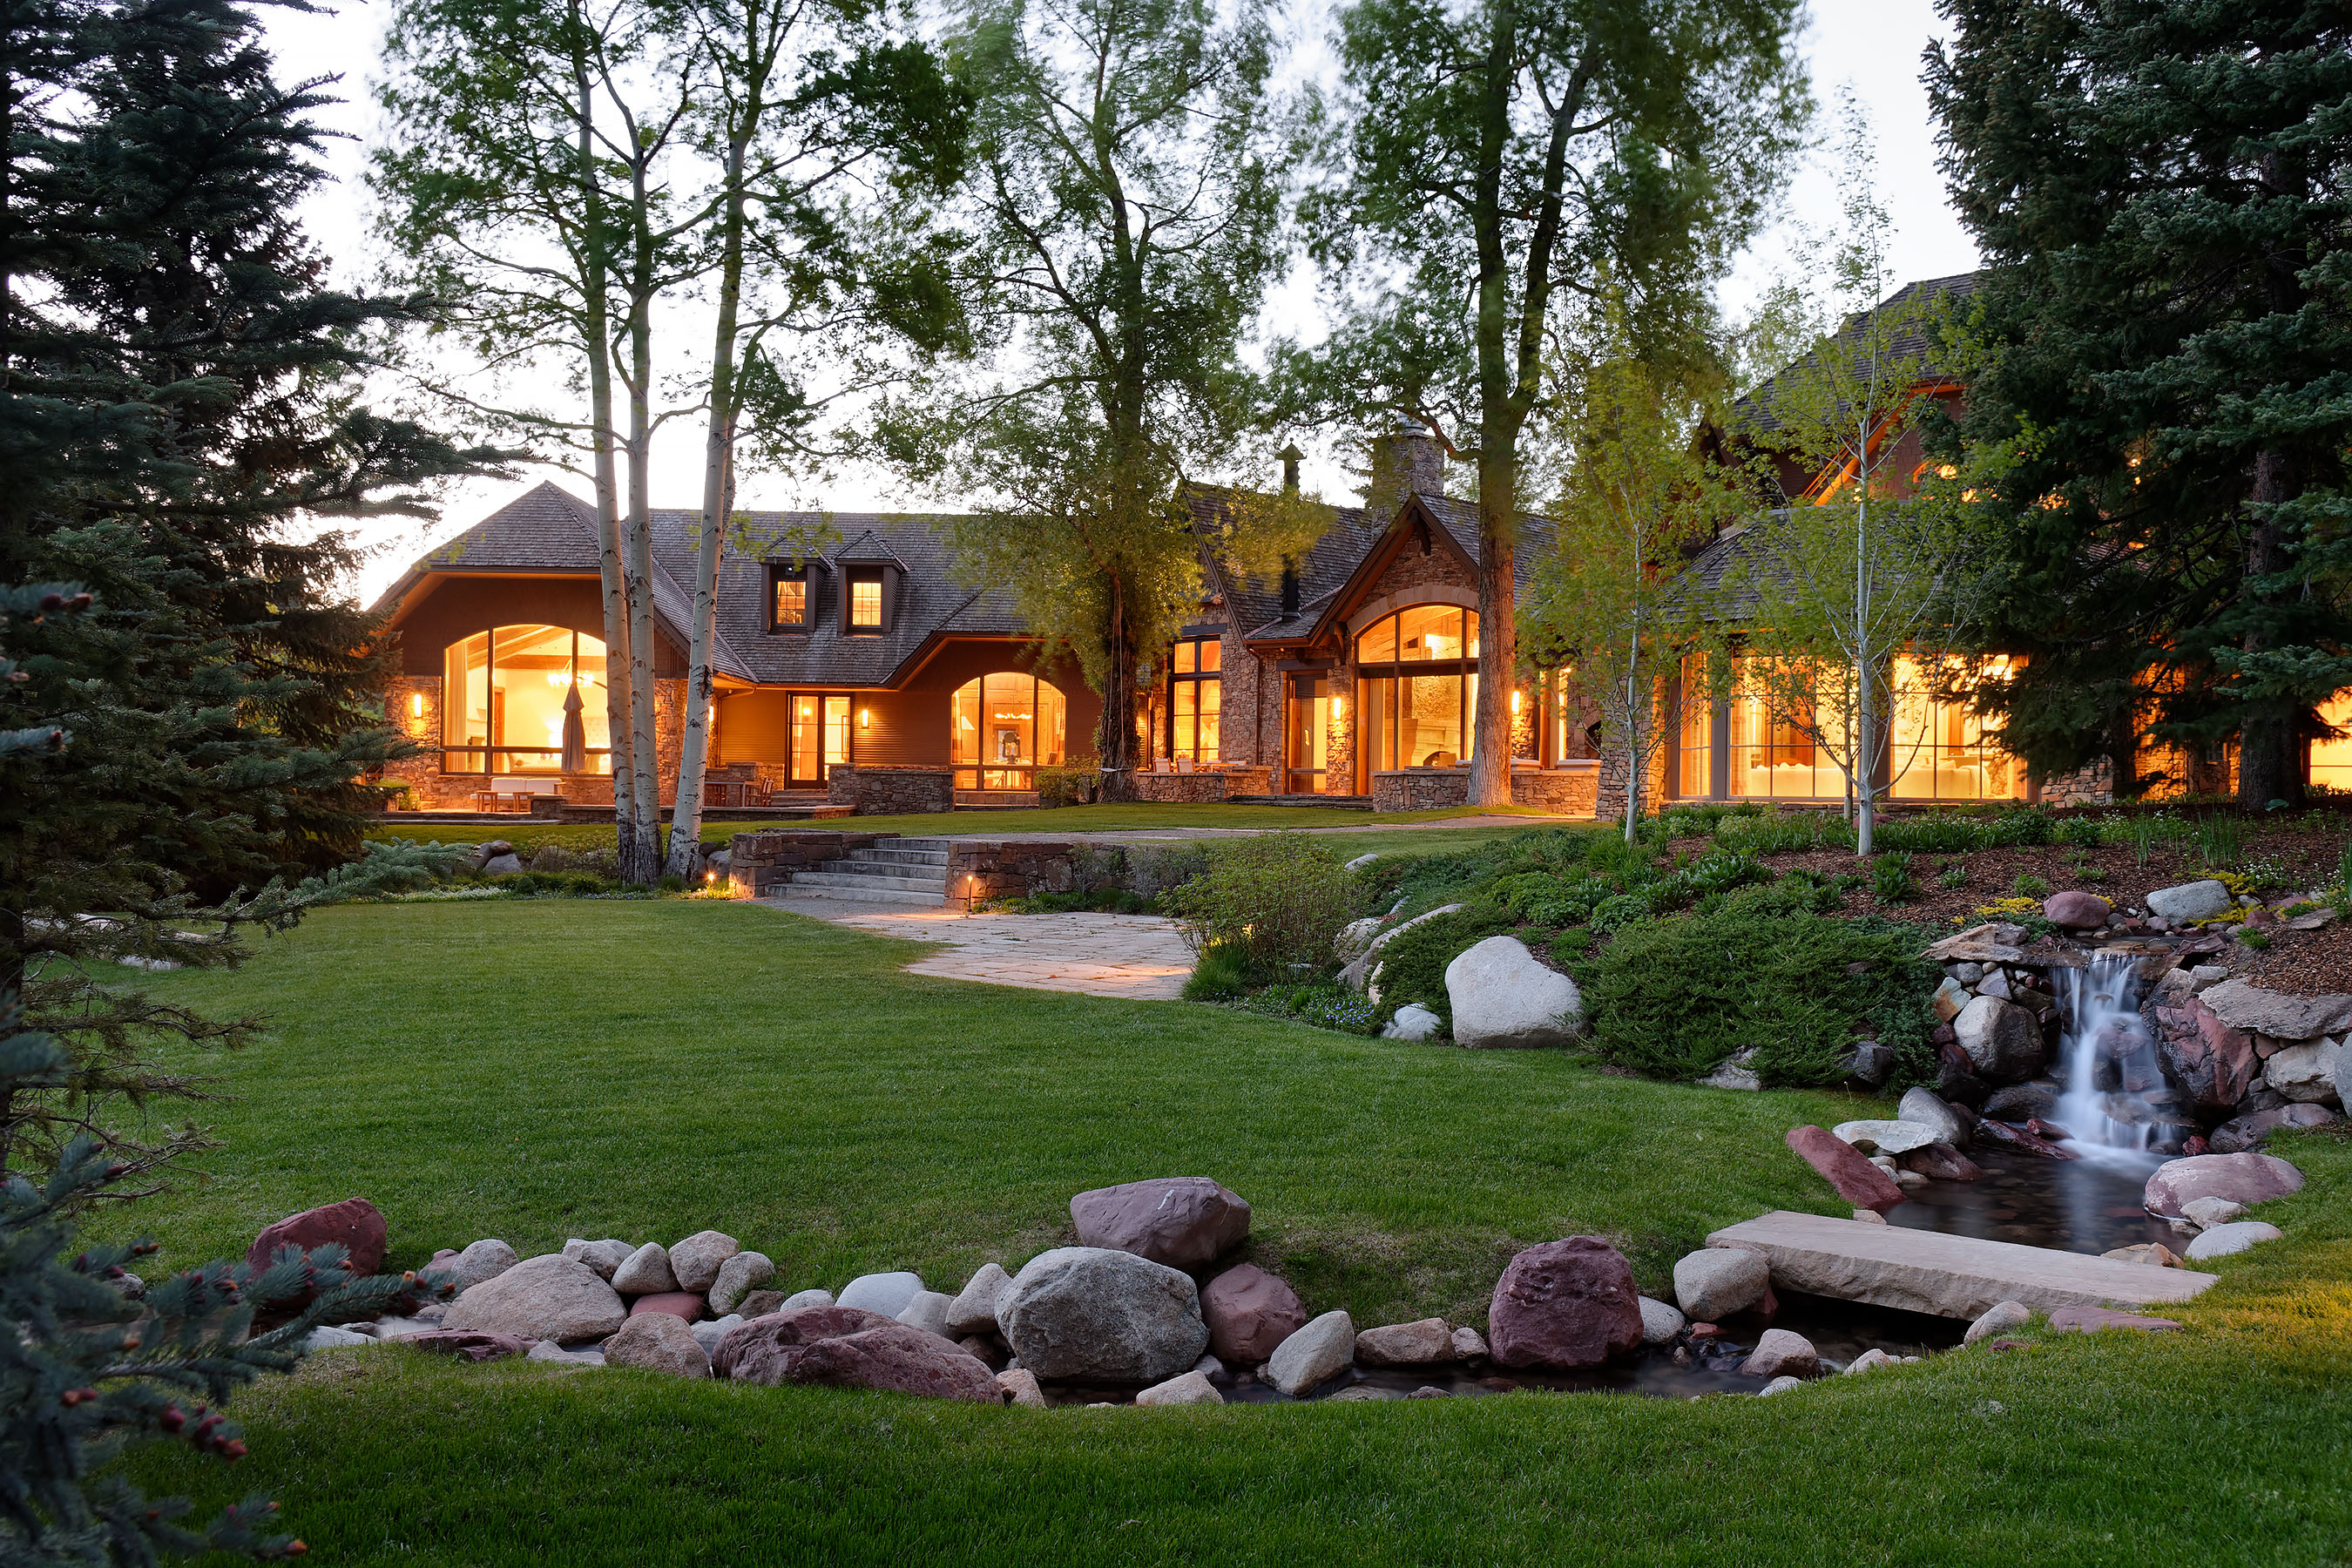 Single Family Home for Sale at Aspen Highlands Estate 36 Glen Garry Drive Aspen, Colorado, 81611 United States